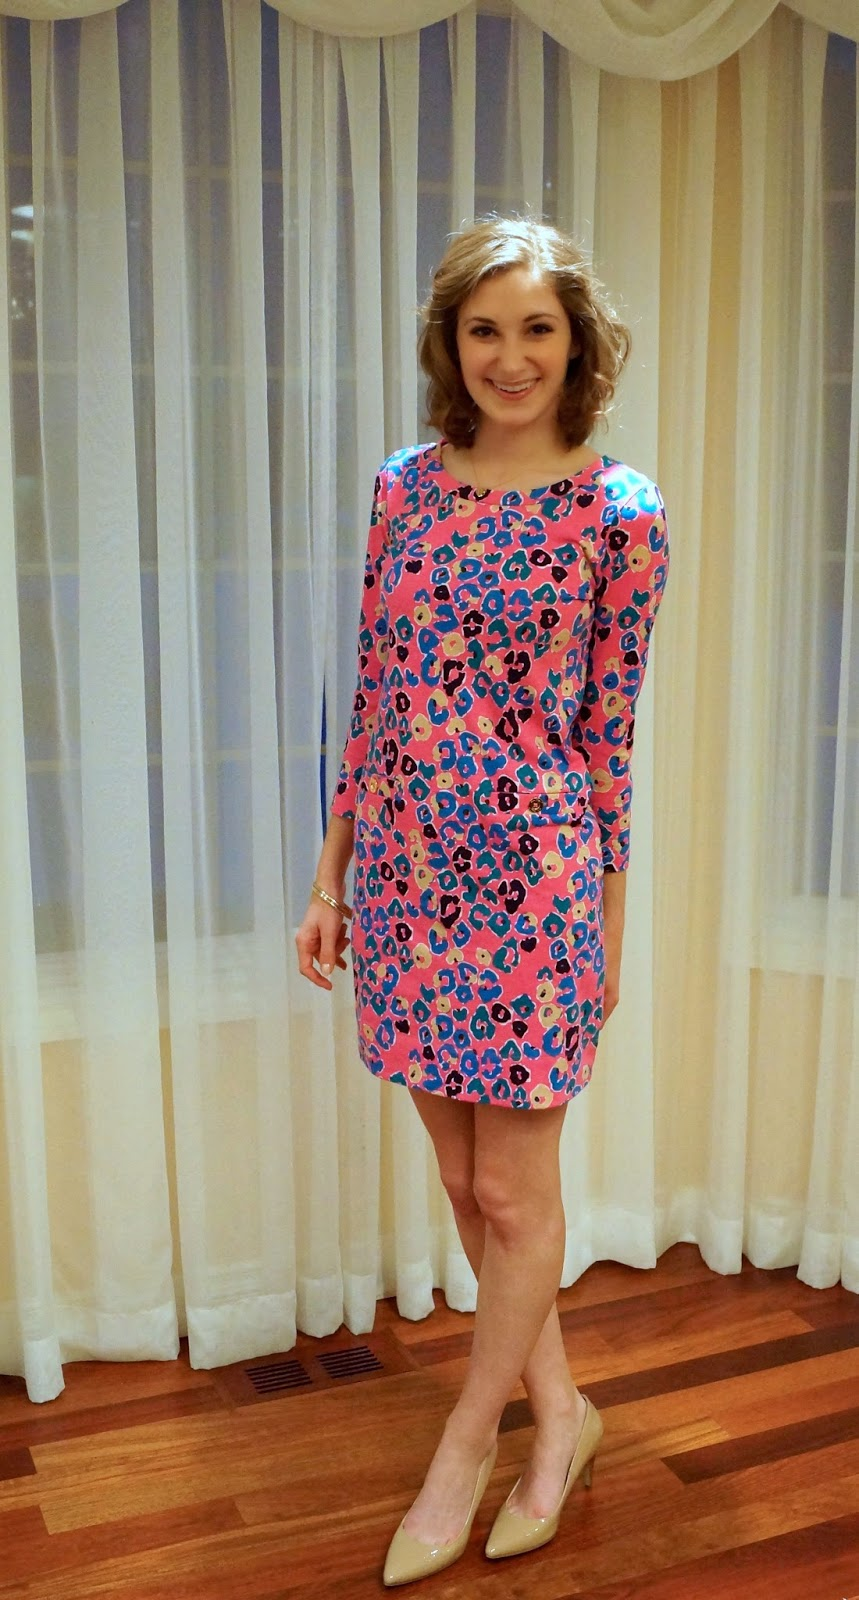 Belk Lilly Pulitzer Dresses Lilly Pulitzer to Sadie s